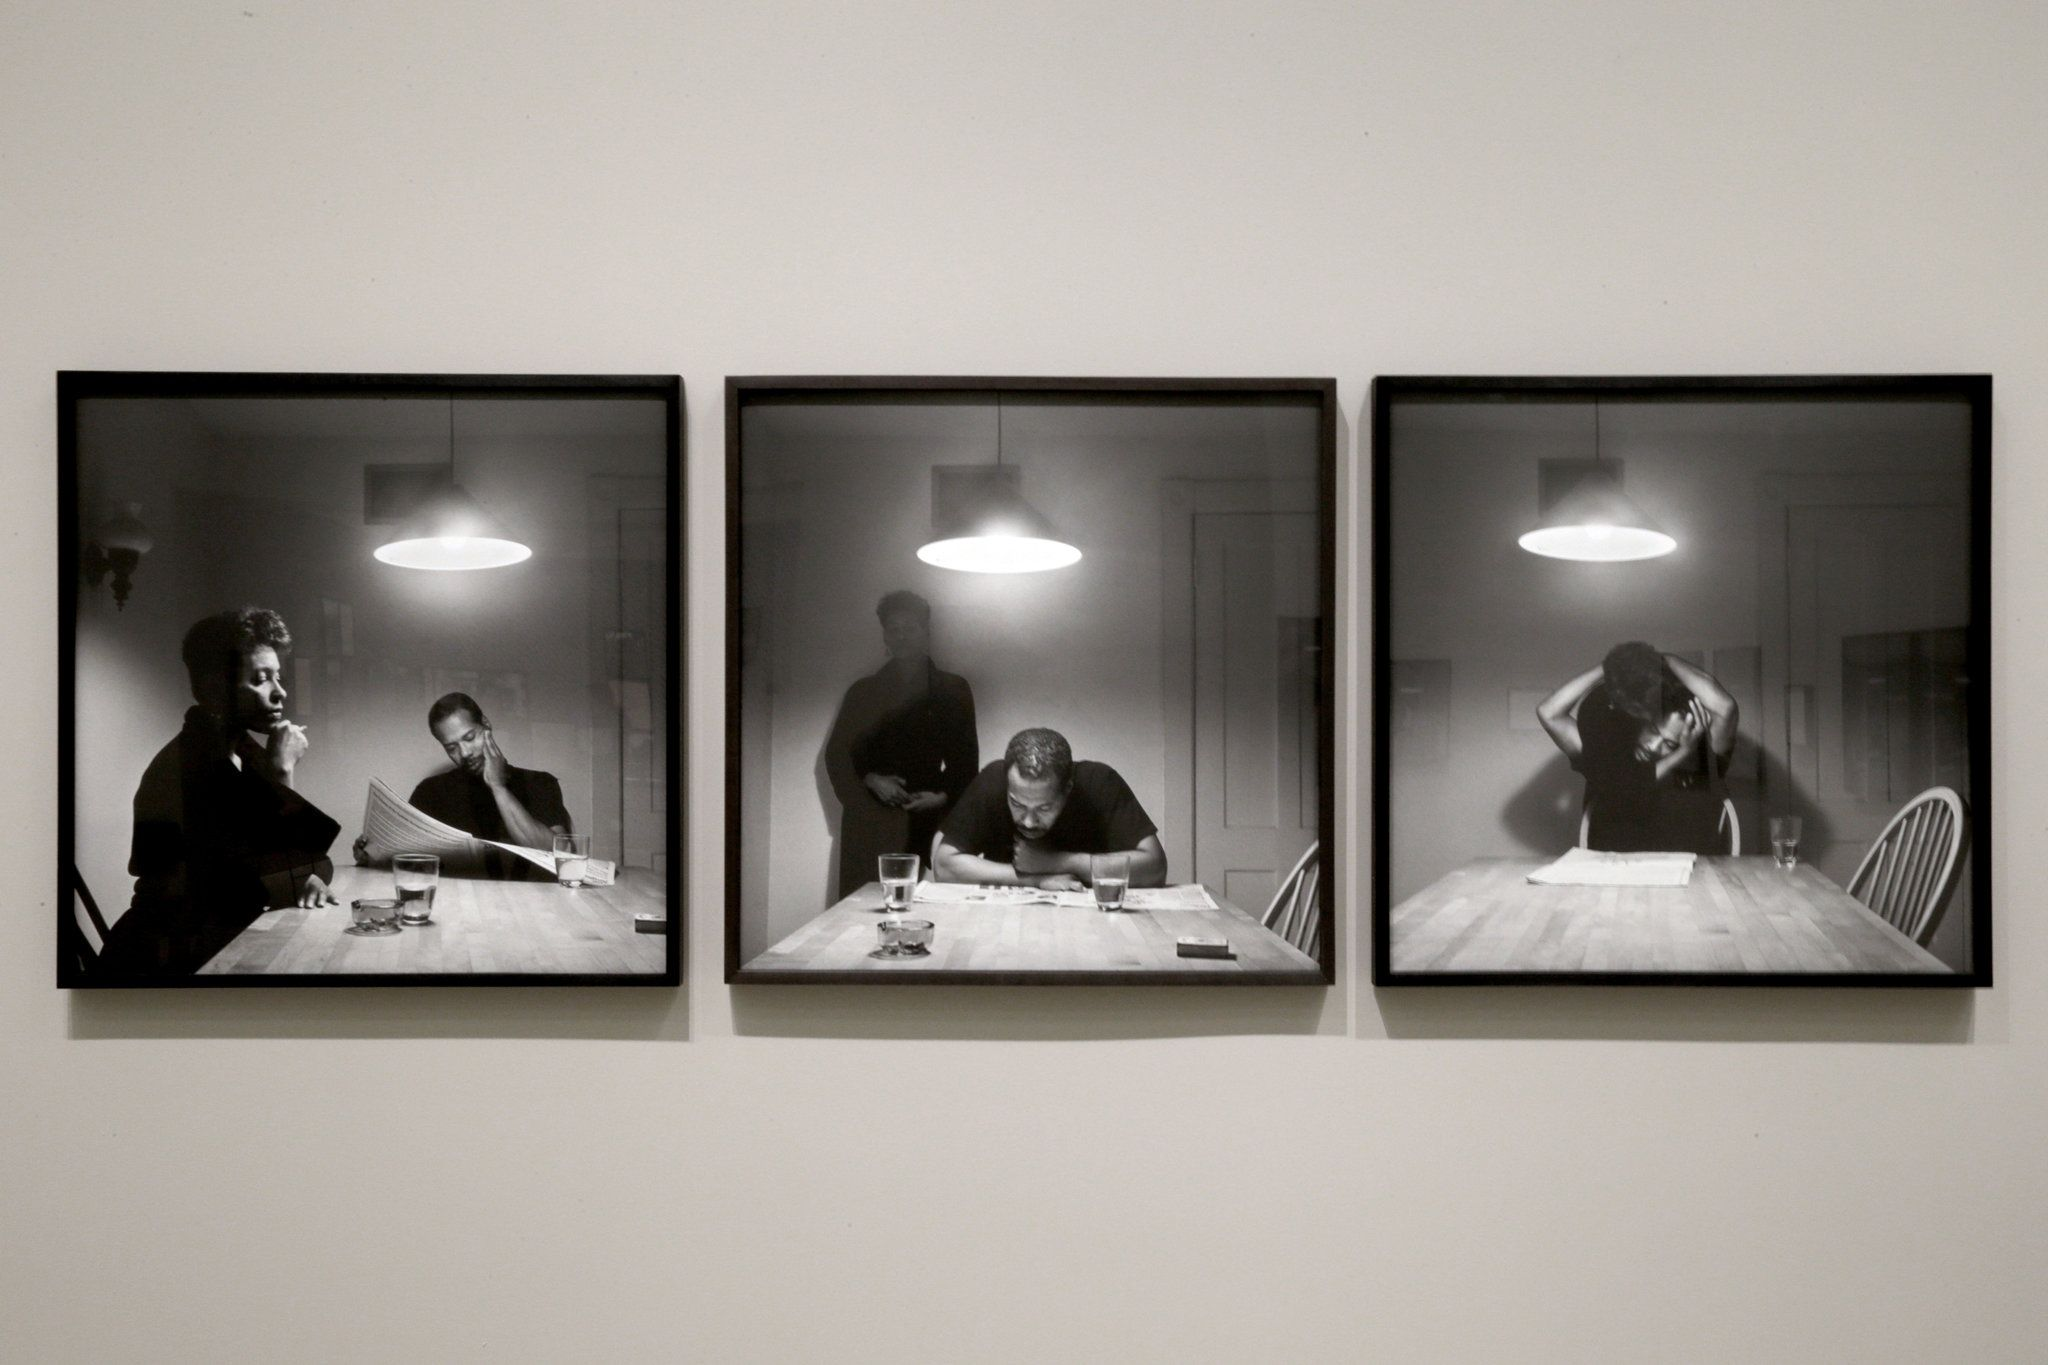 Carrie Mae Weems Kitchen Table Series Carrie mae weems kitchen table series untitled man reading carrie mae weems kitchen table series untitled man reading newspaper 1990 workwithnaturefo